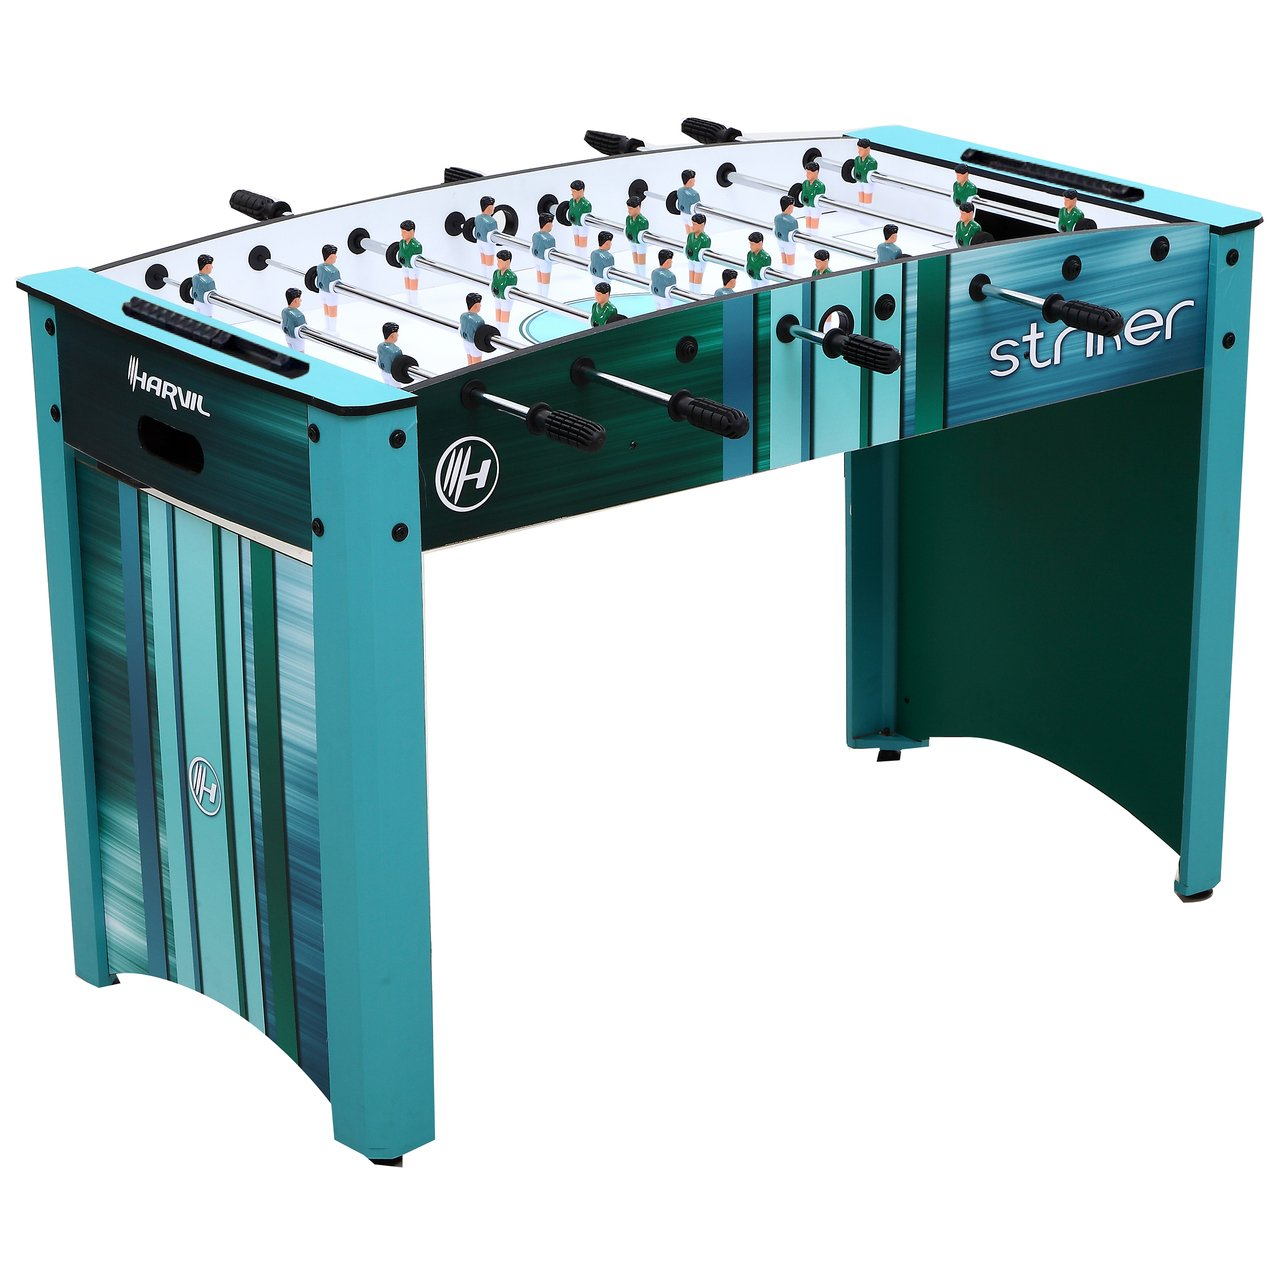 Harvil Striker 4 Foot Foosball Table for Kids and Adults with Safety Telescoping Rods, Manual Scorers, and Free Foosballs by Harvil